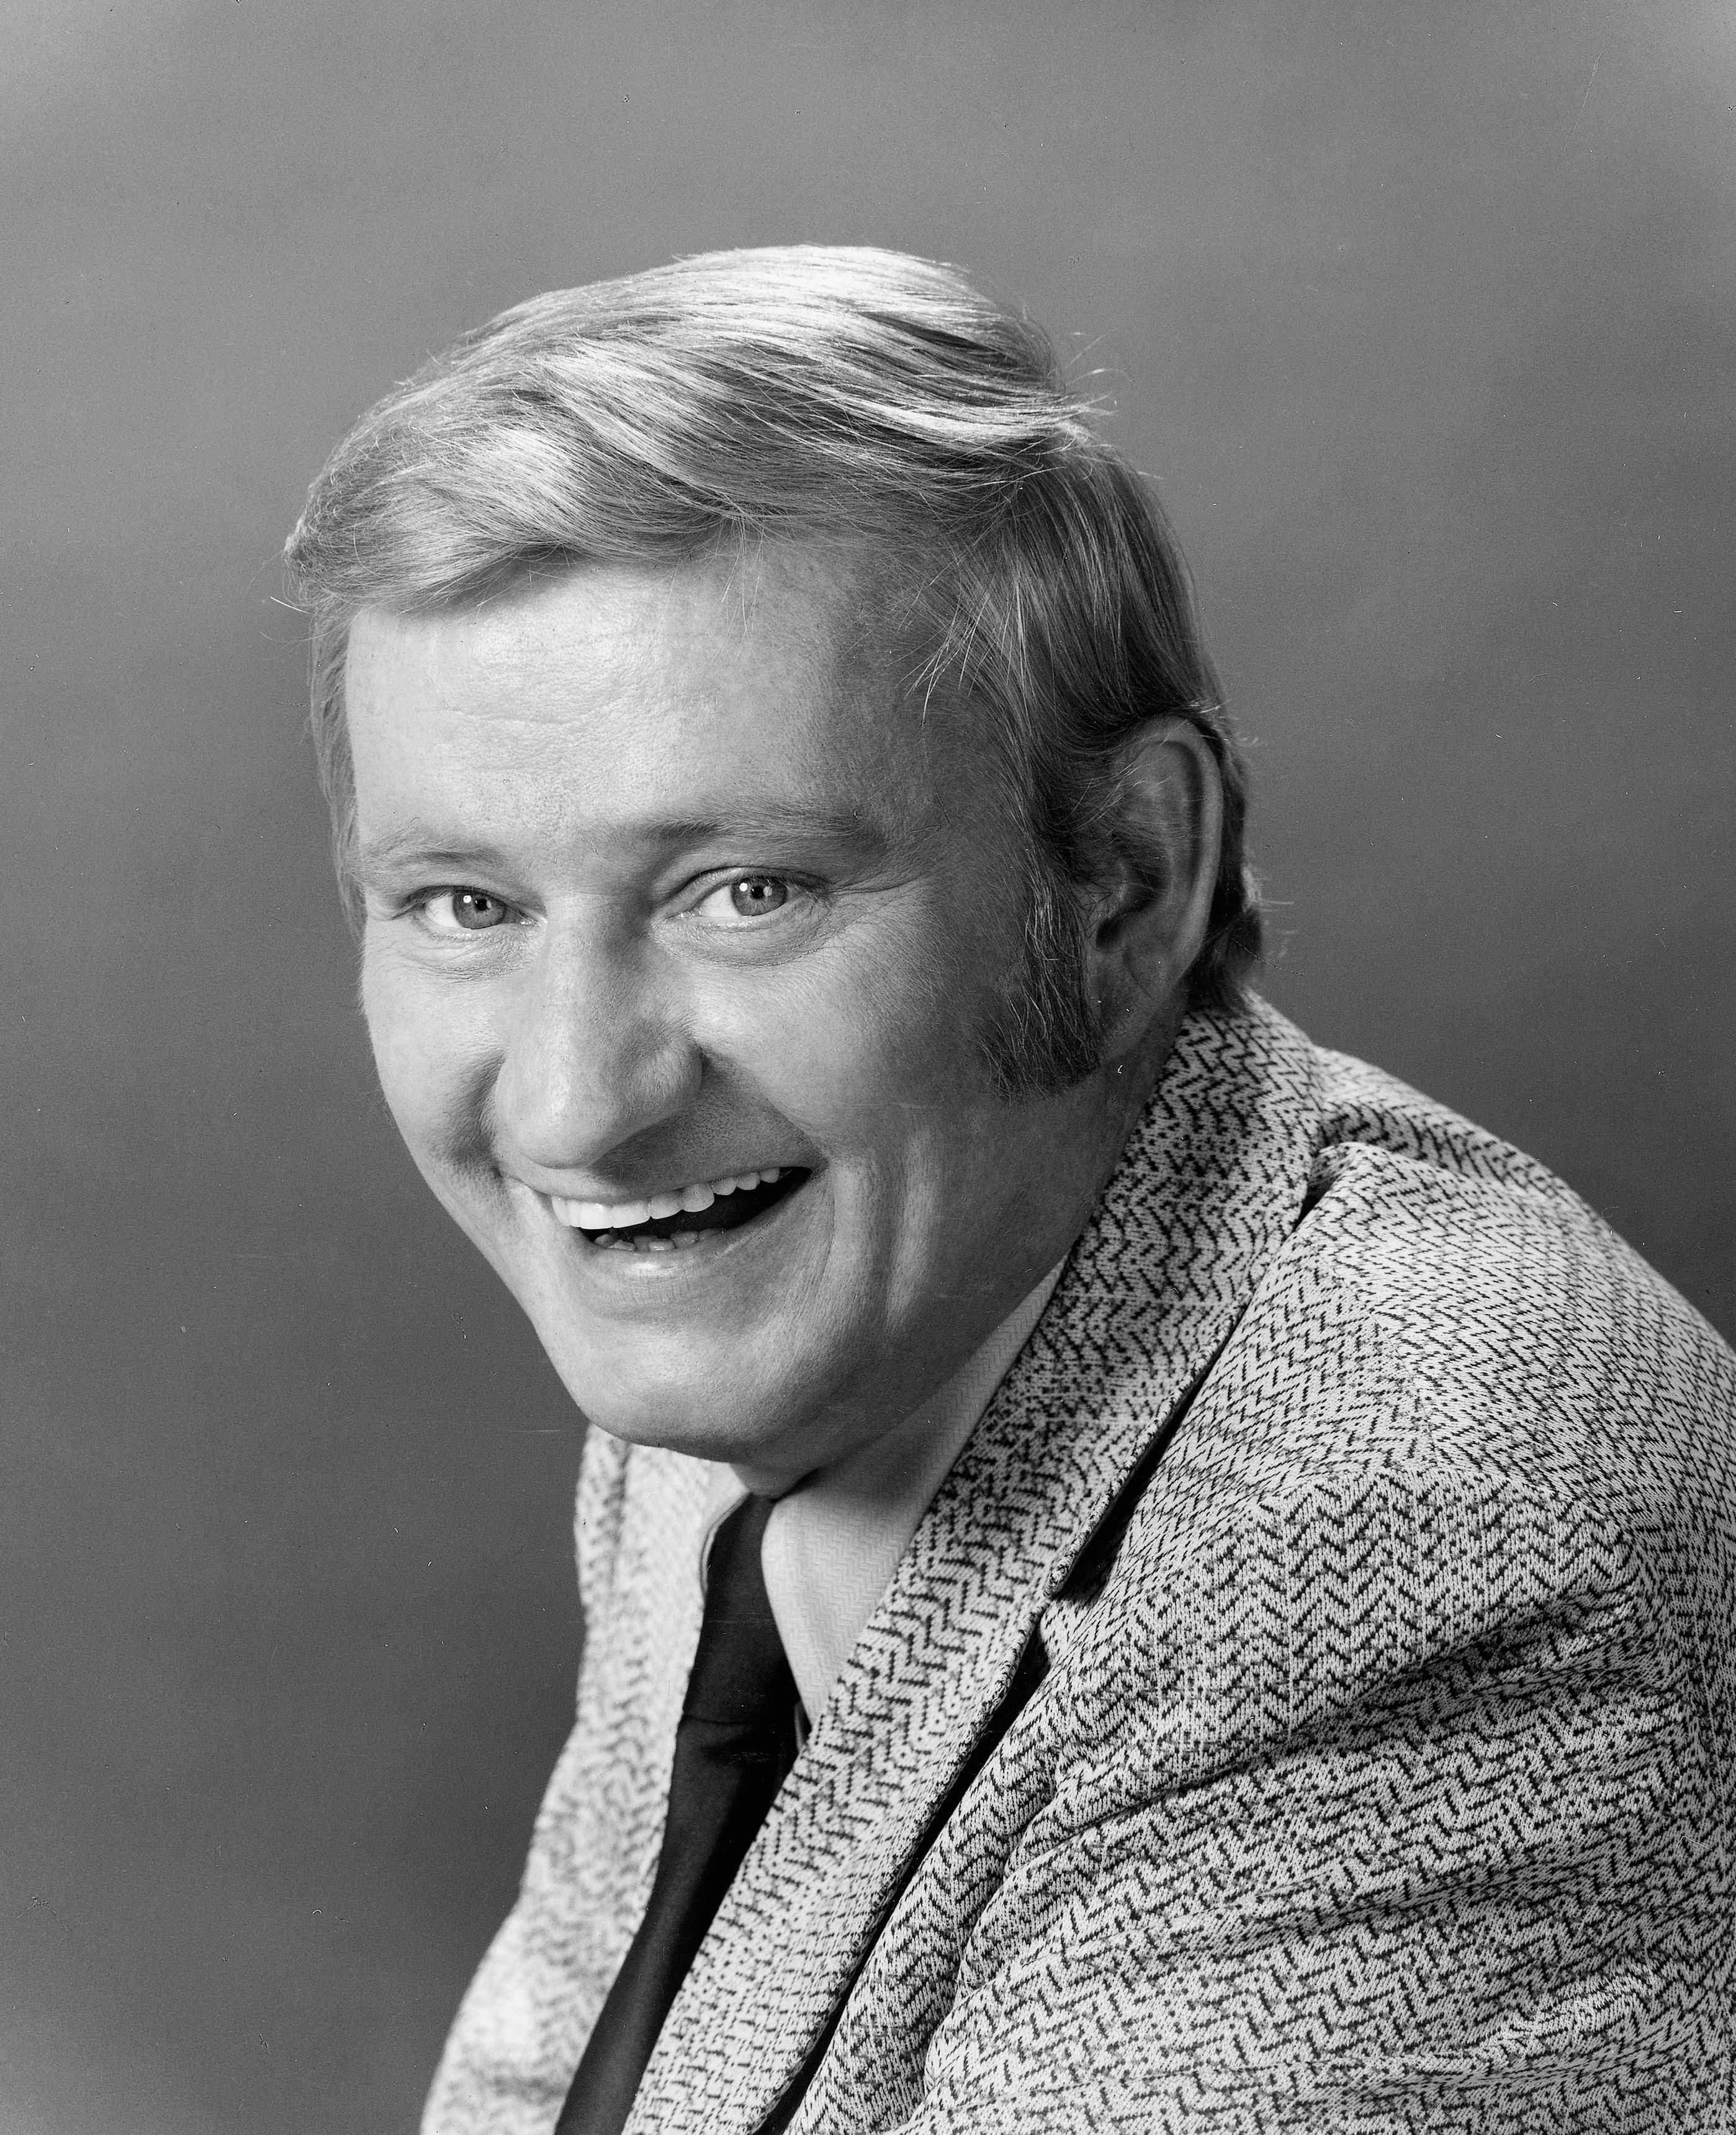 """Photo of Dave Madden from """"The Partridge Family"""" - Gallery (1972). 